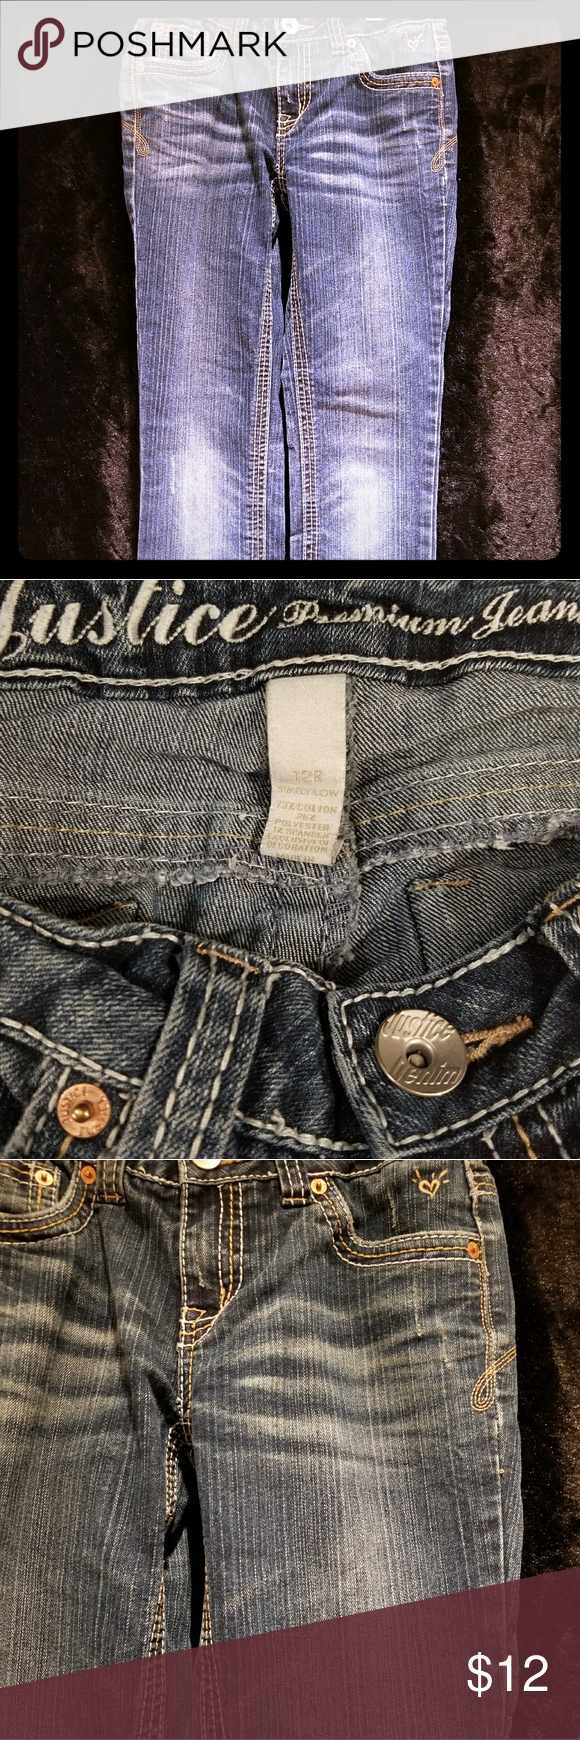 Justice Jeans Girls 12 Regular Fashion Fashion Trends Girls Jeans